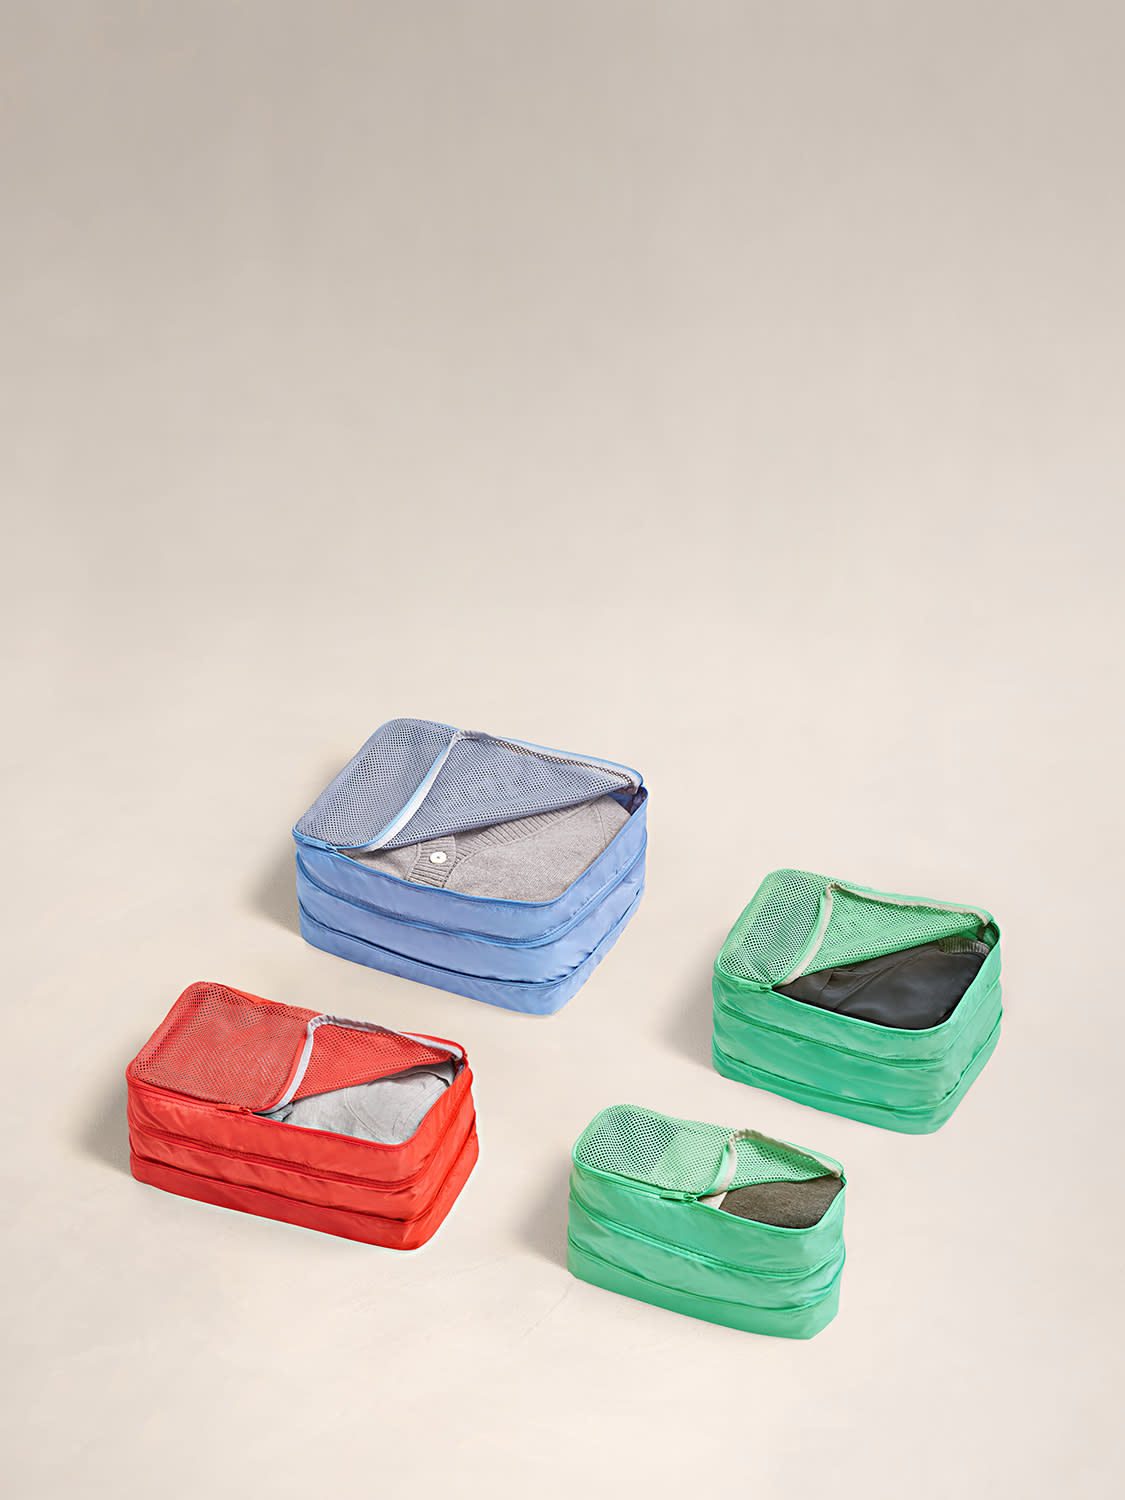 The Expandable packing cubes set of four in periwinkle, aqua and coral